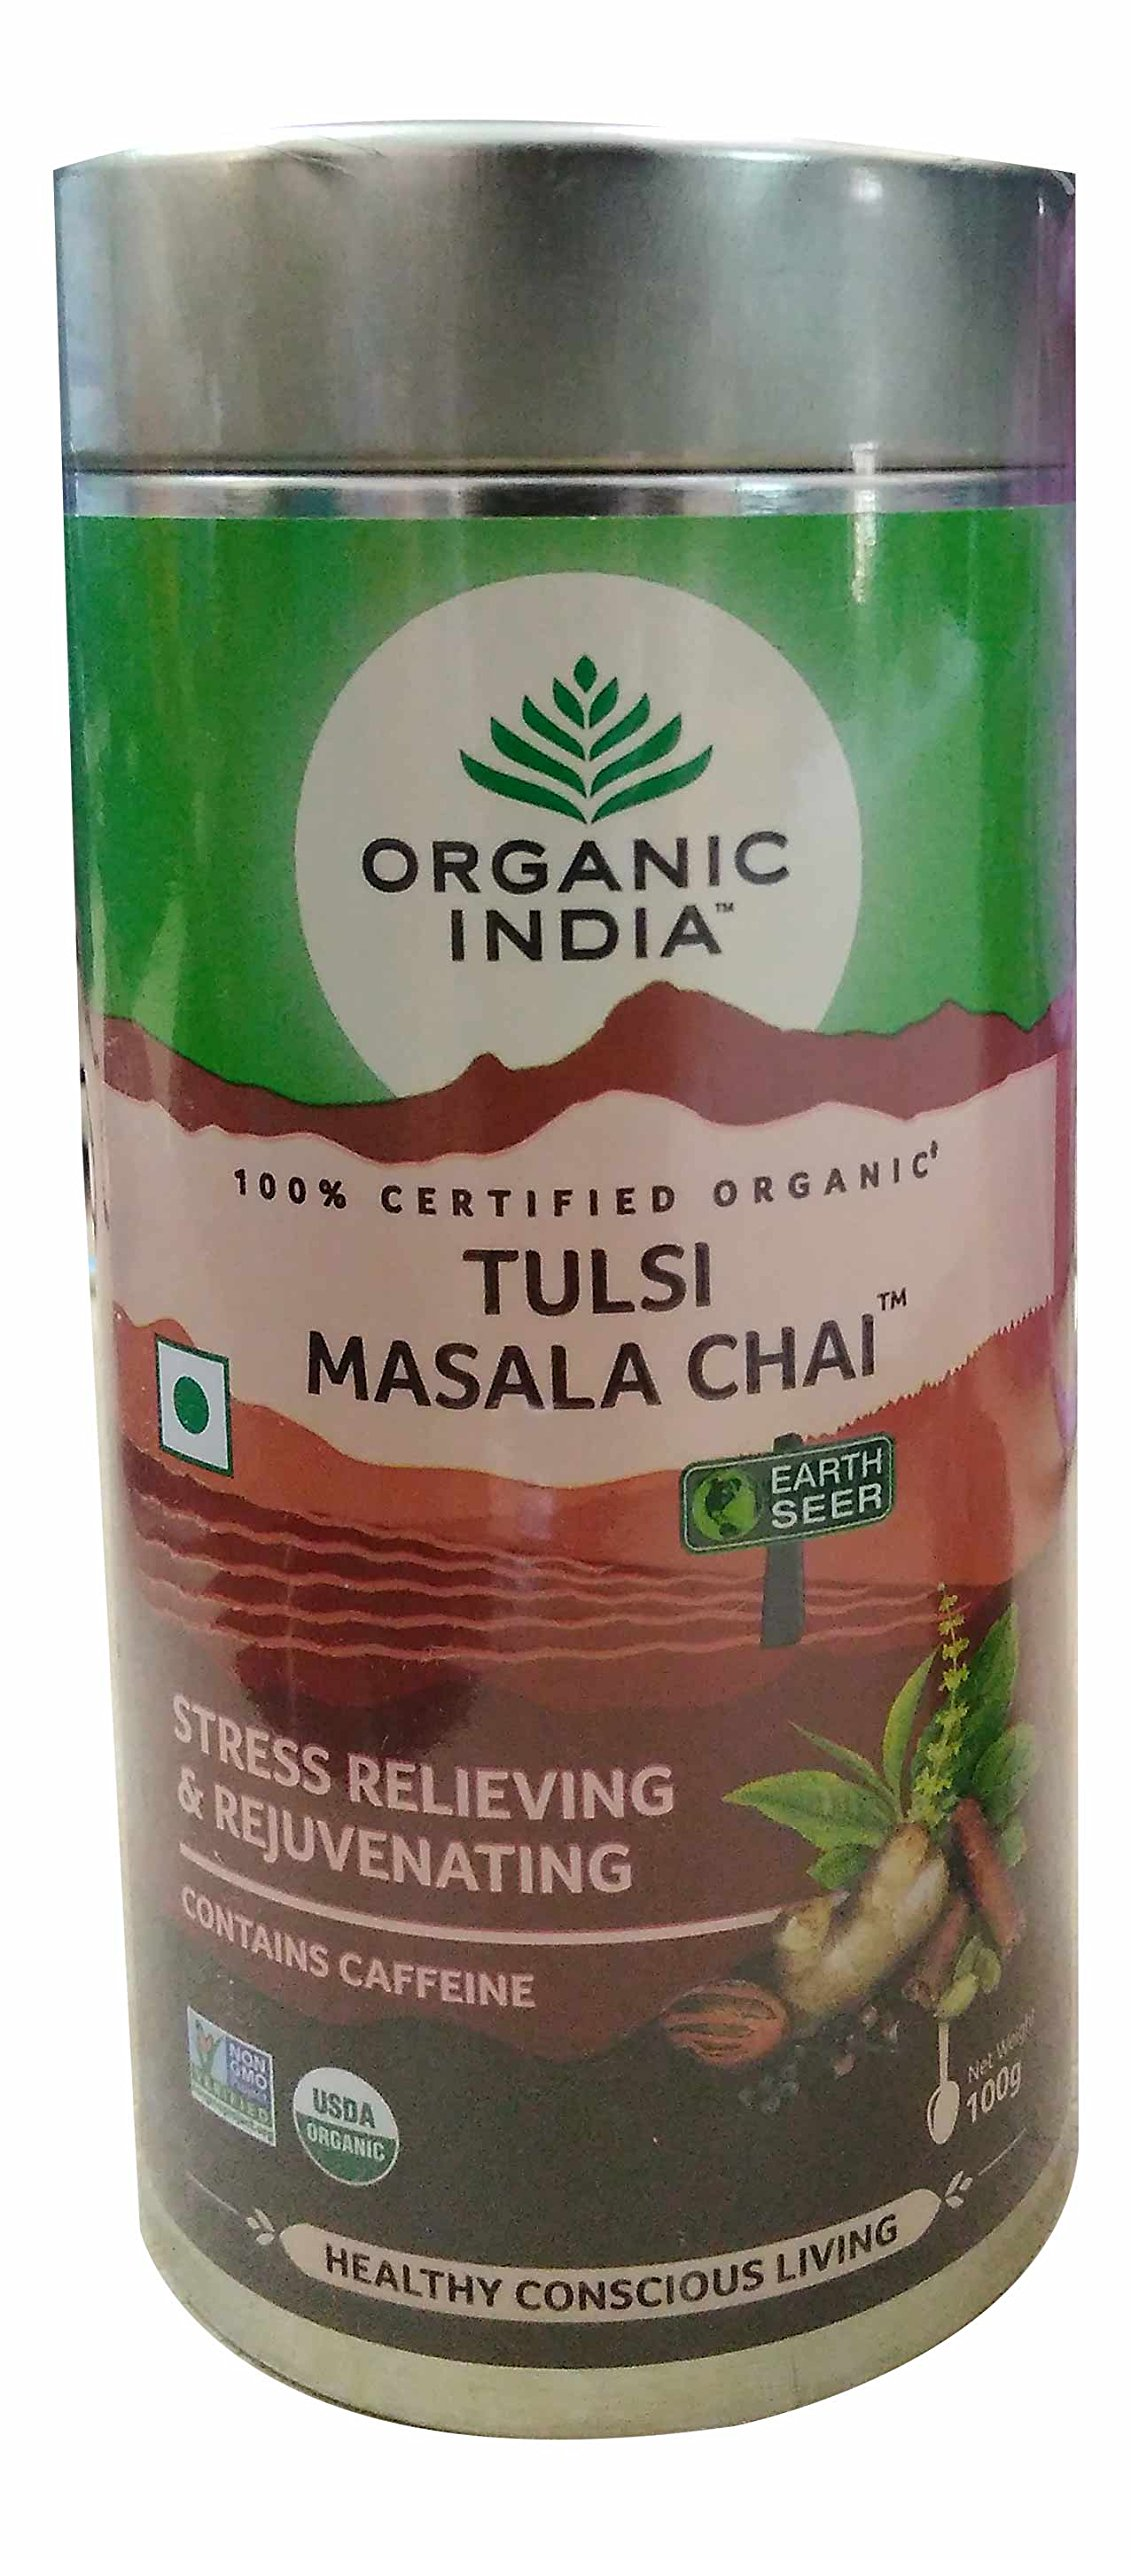 (12 PACK) - Organic India - Org Tulsi Masala Chai | 100g | 12 PACK BUNDLE